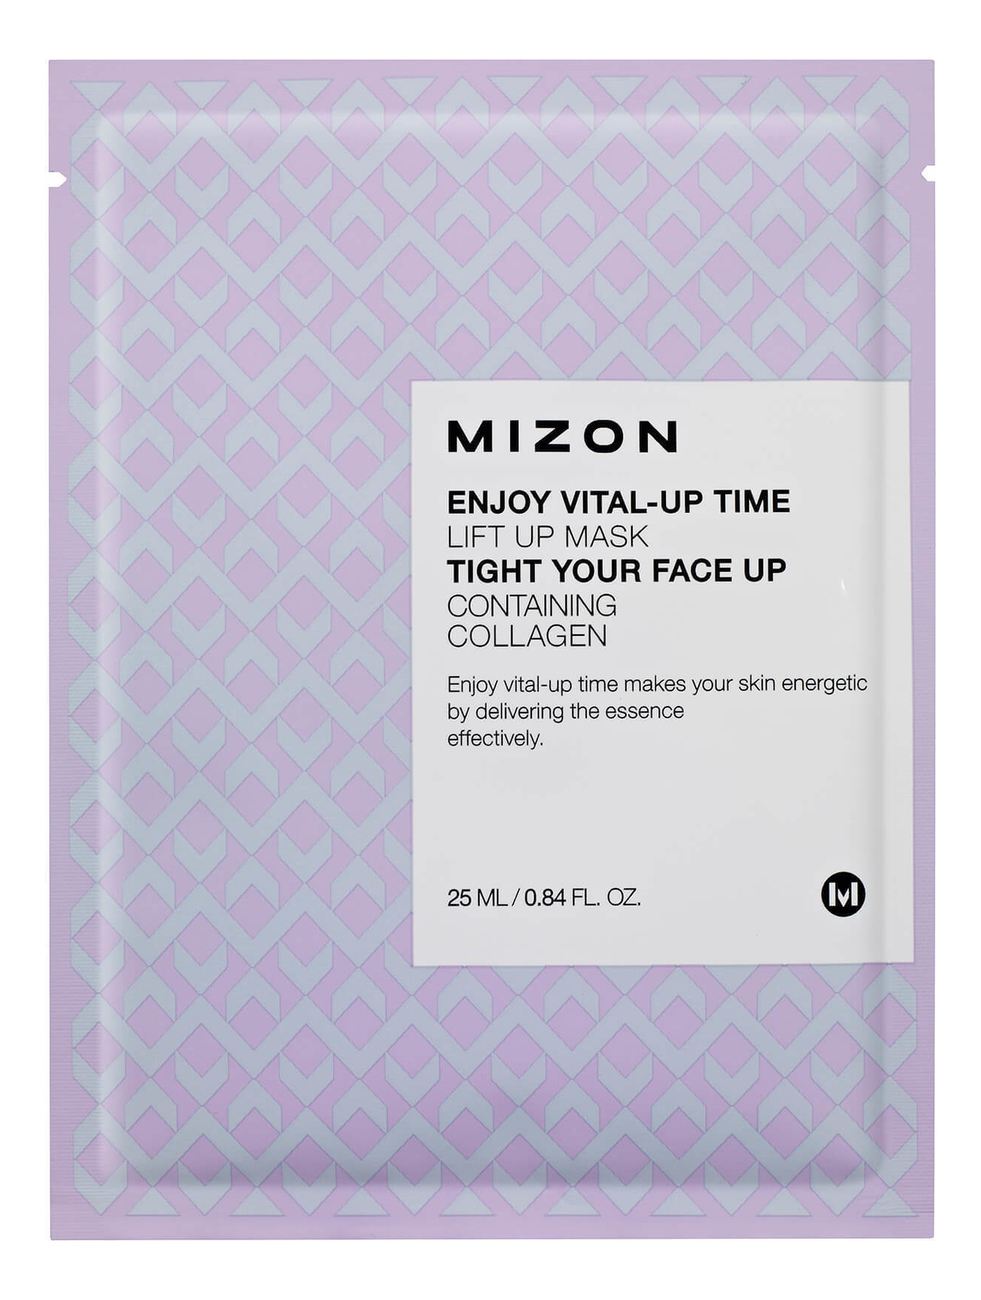 Маска листовая для лица с лифтинг эффектом Enjoy Vital-Up Time Lift Up Mask 25мл